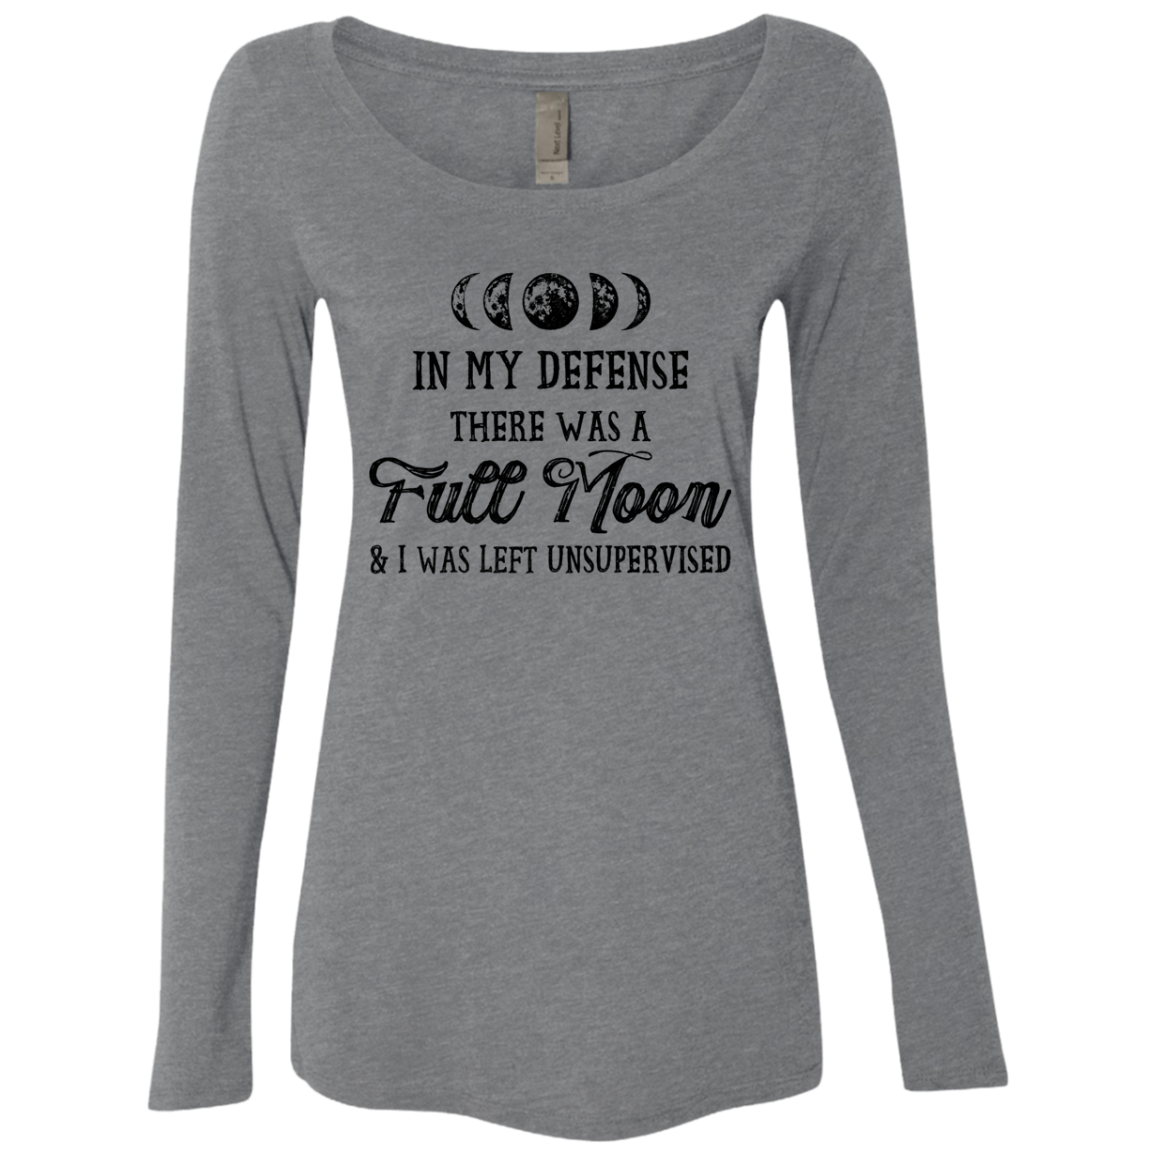 In My Defense There Was A Full Moon And I Was Left Unsupervised Women's Long Sleeve Tee